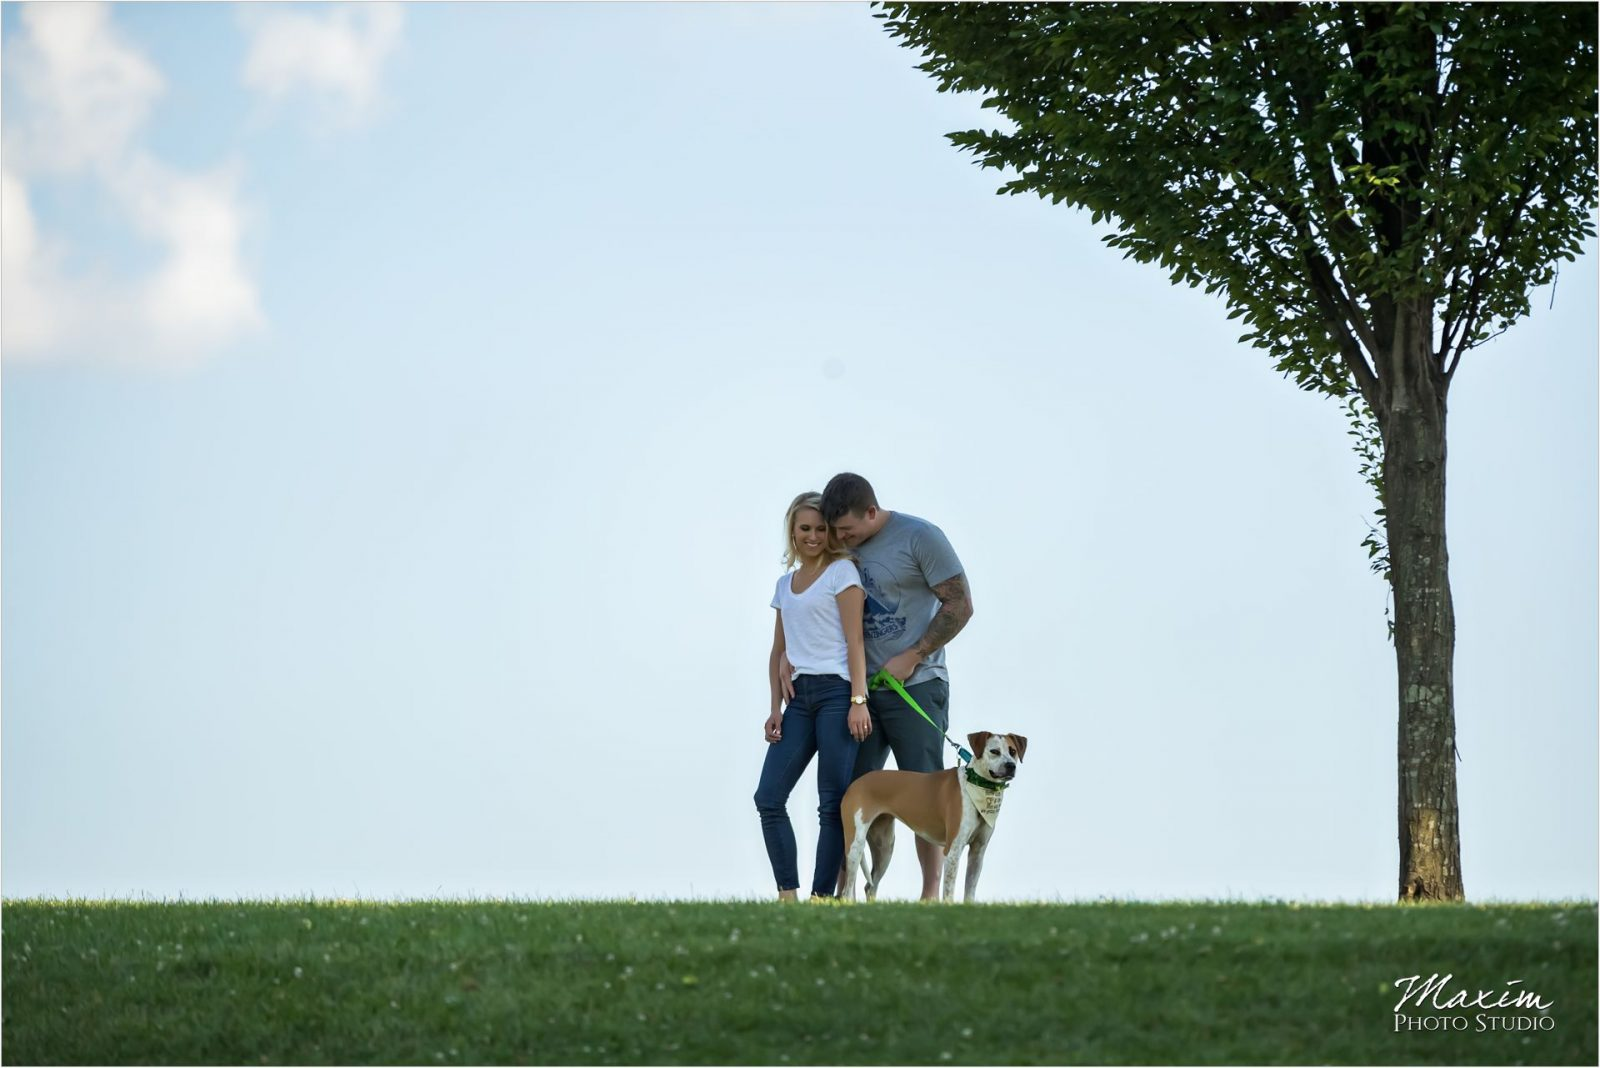 Cincinnati Wedding Photographers Louisville Waterfront Park bridge engagementCincinnati Wedding Photographers Louisville Waterfront Park bridge engagement dog